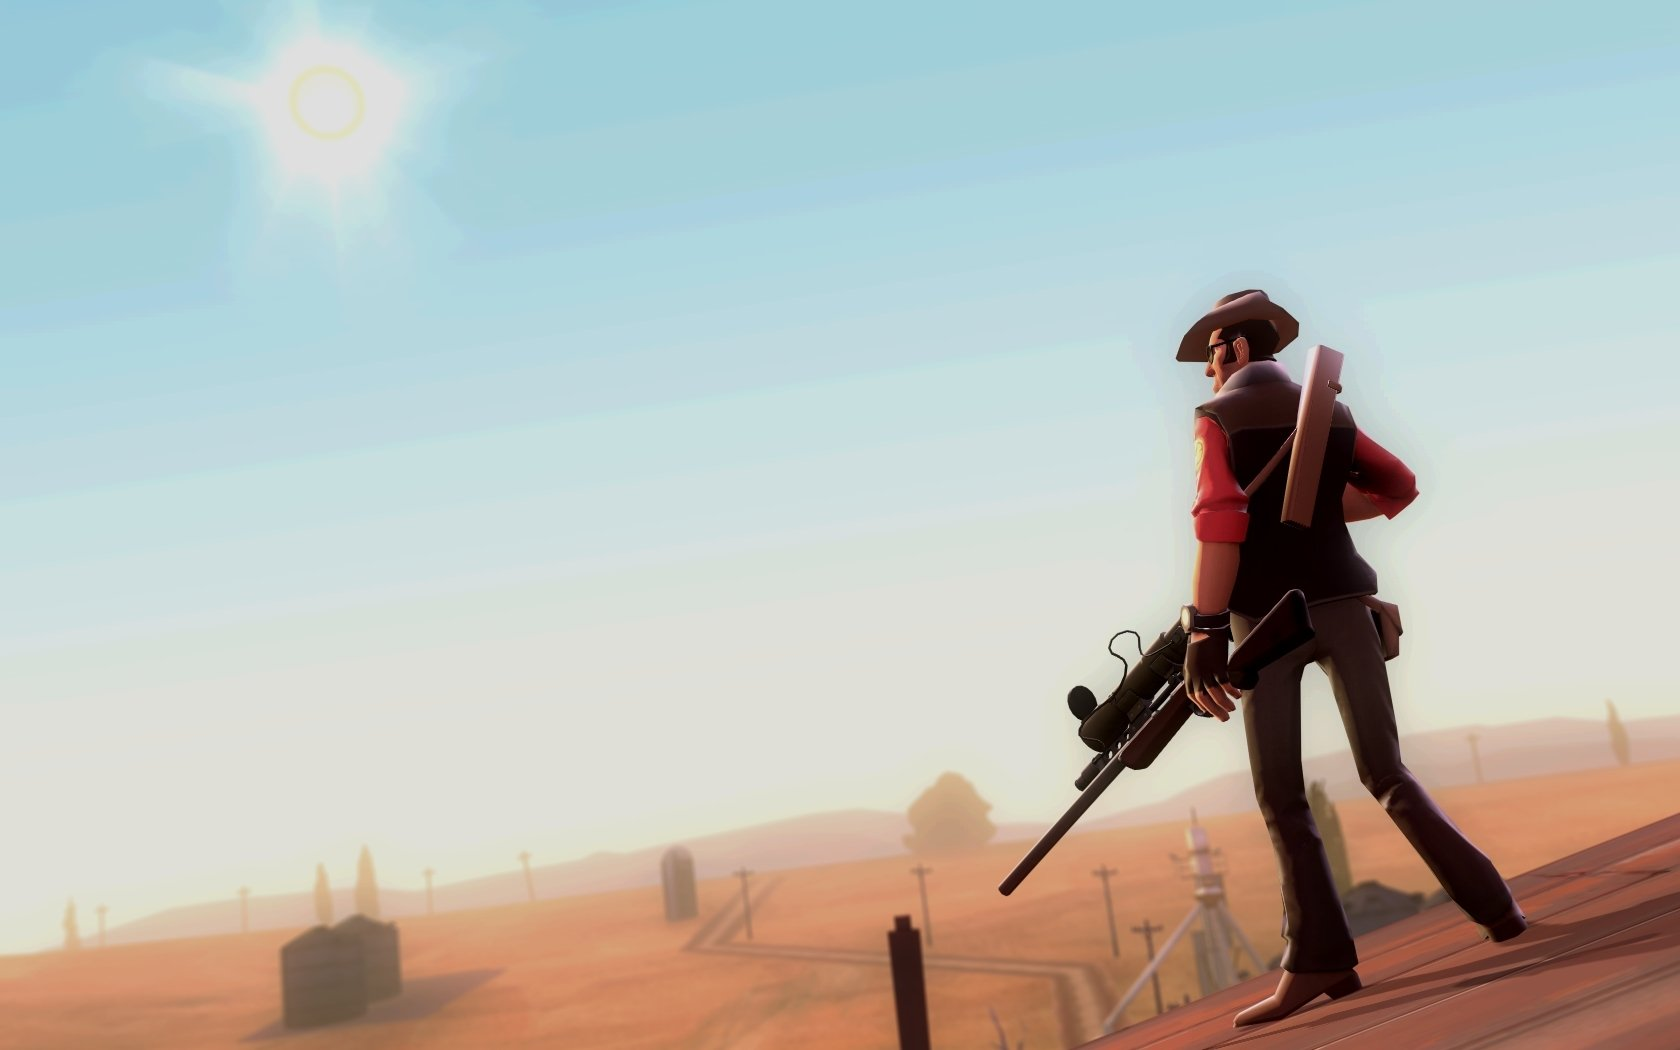 Team Fortress 2 Wallpaper and Background Image 1680x1050 ID 1680x1050